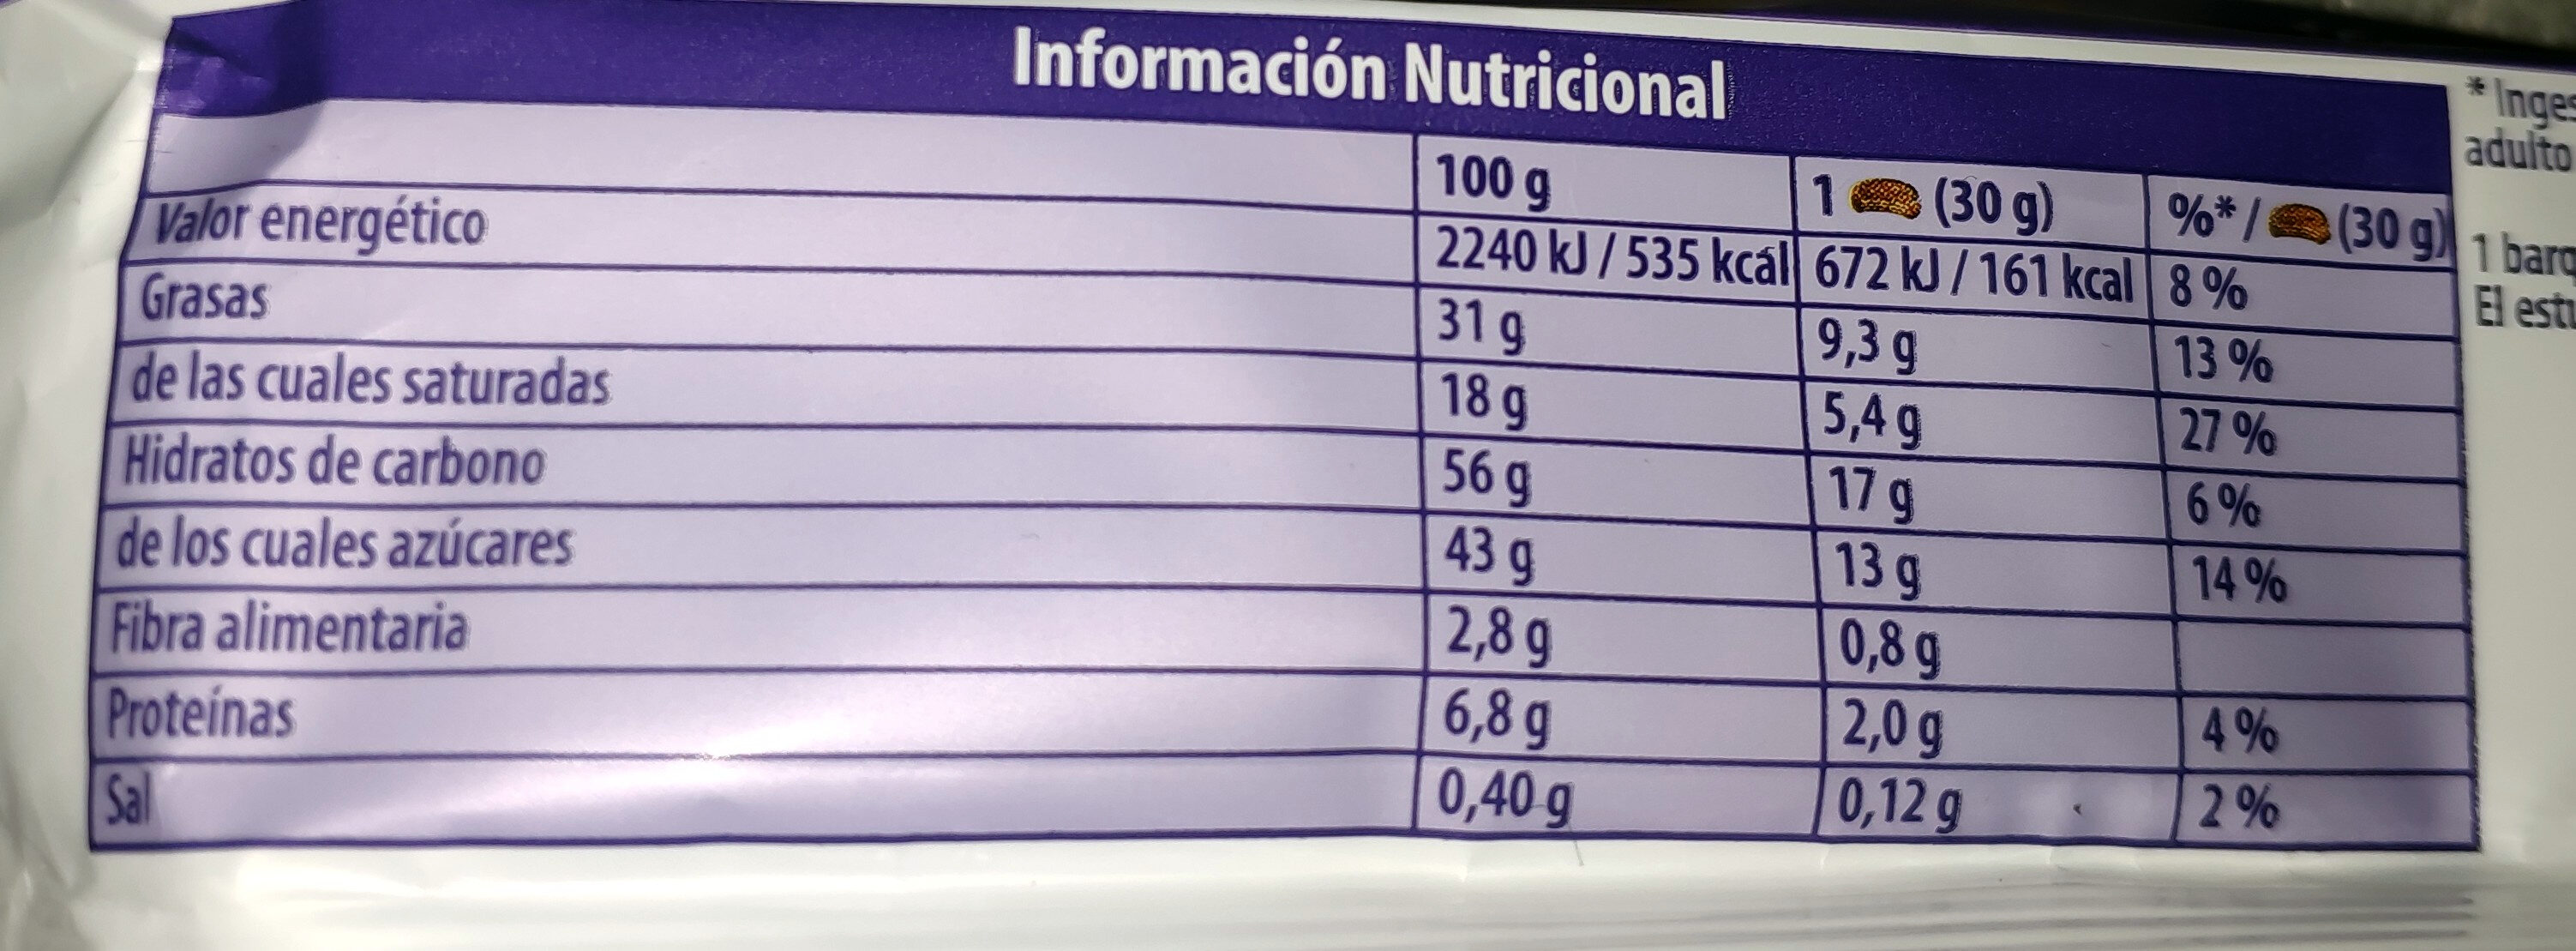 Choco Wafer - Nutrition facts - es